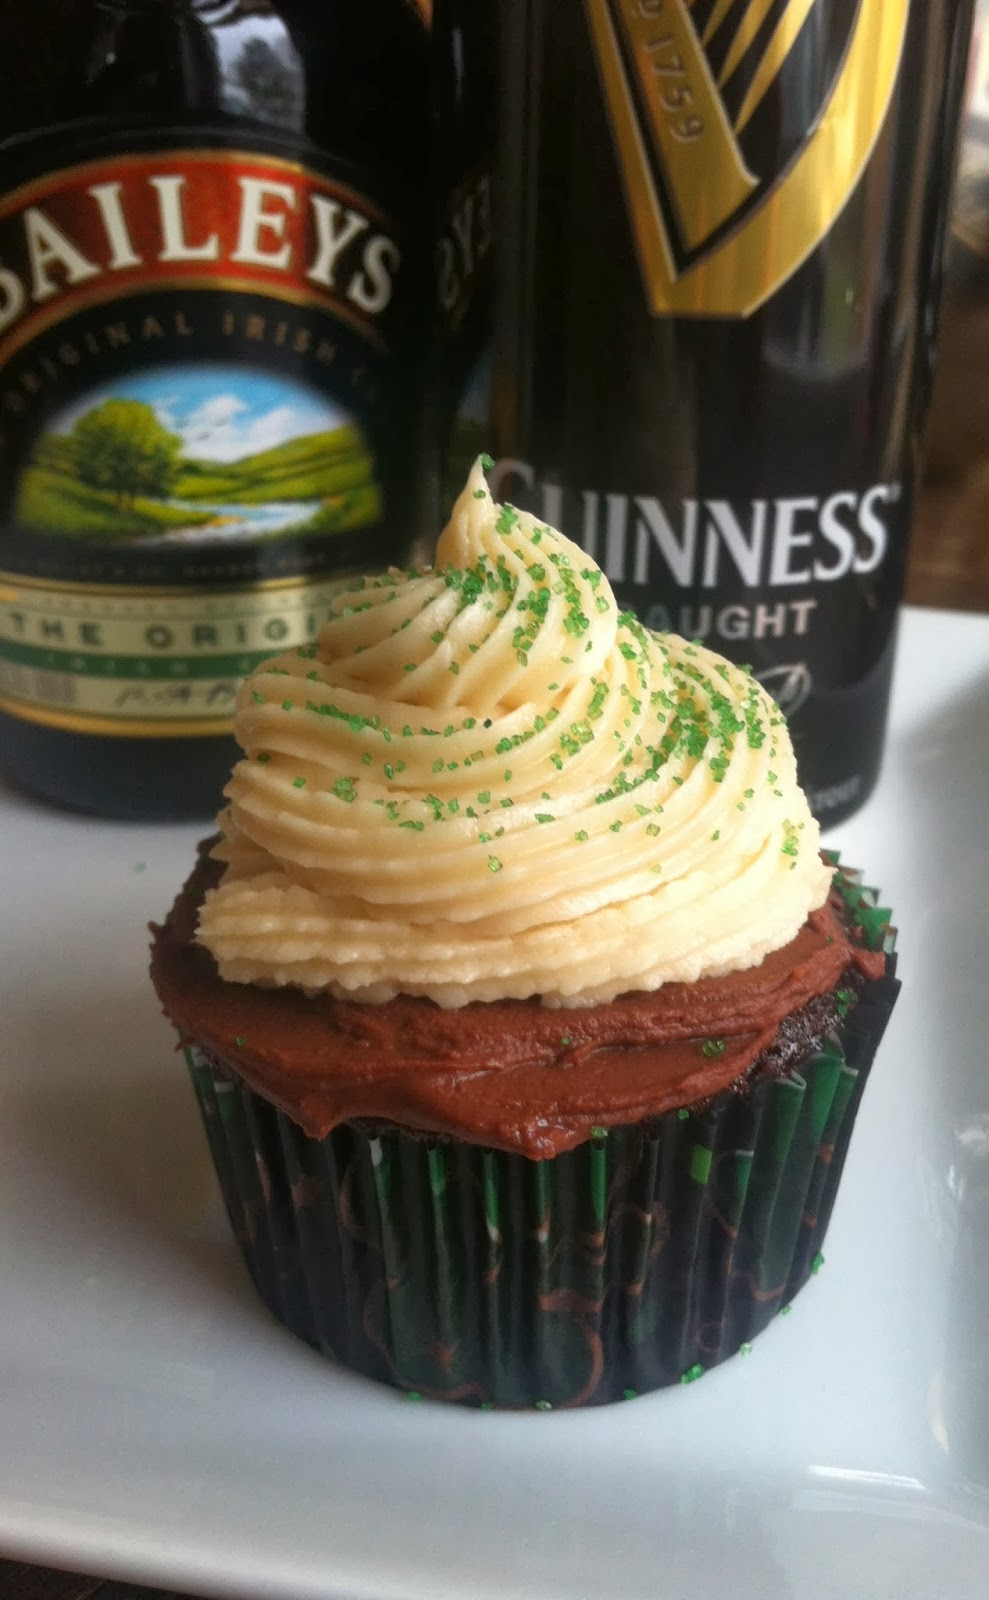 Irish Car Bomb Cupcake Recipe St. Patrick's Day